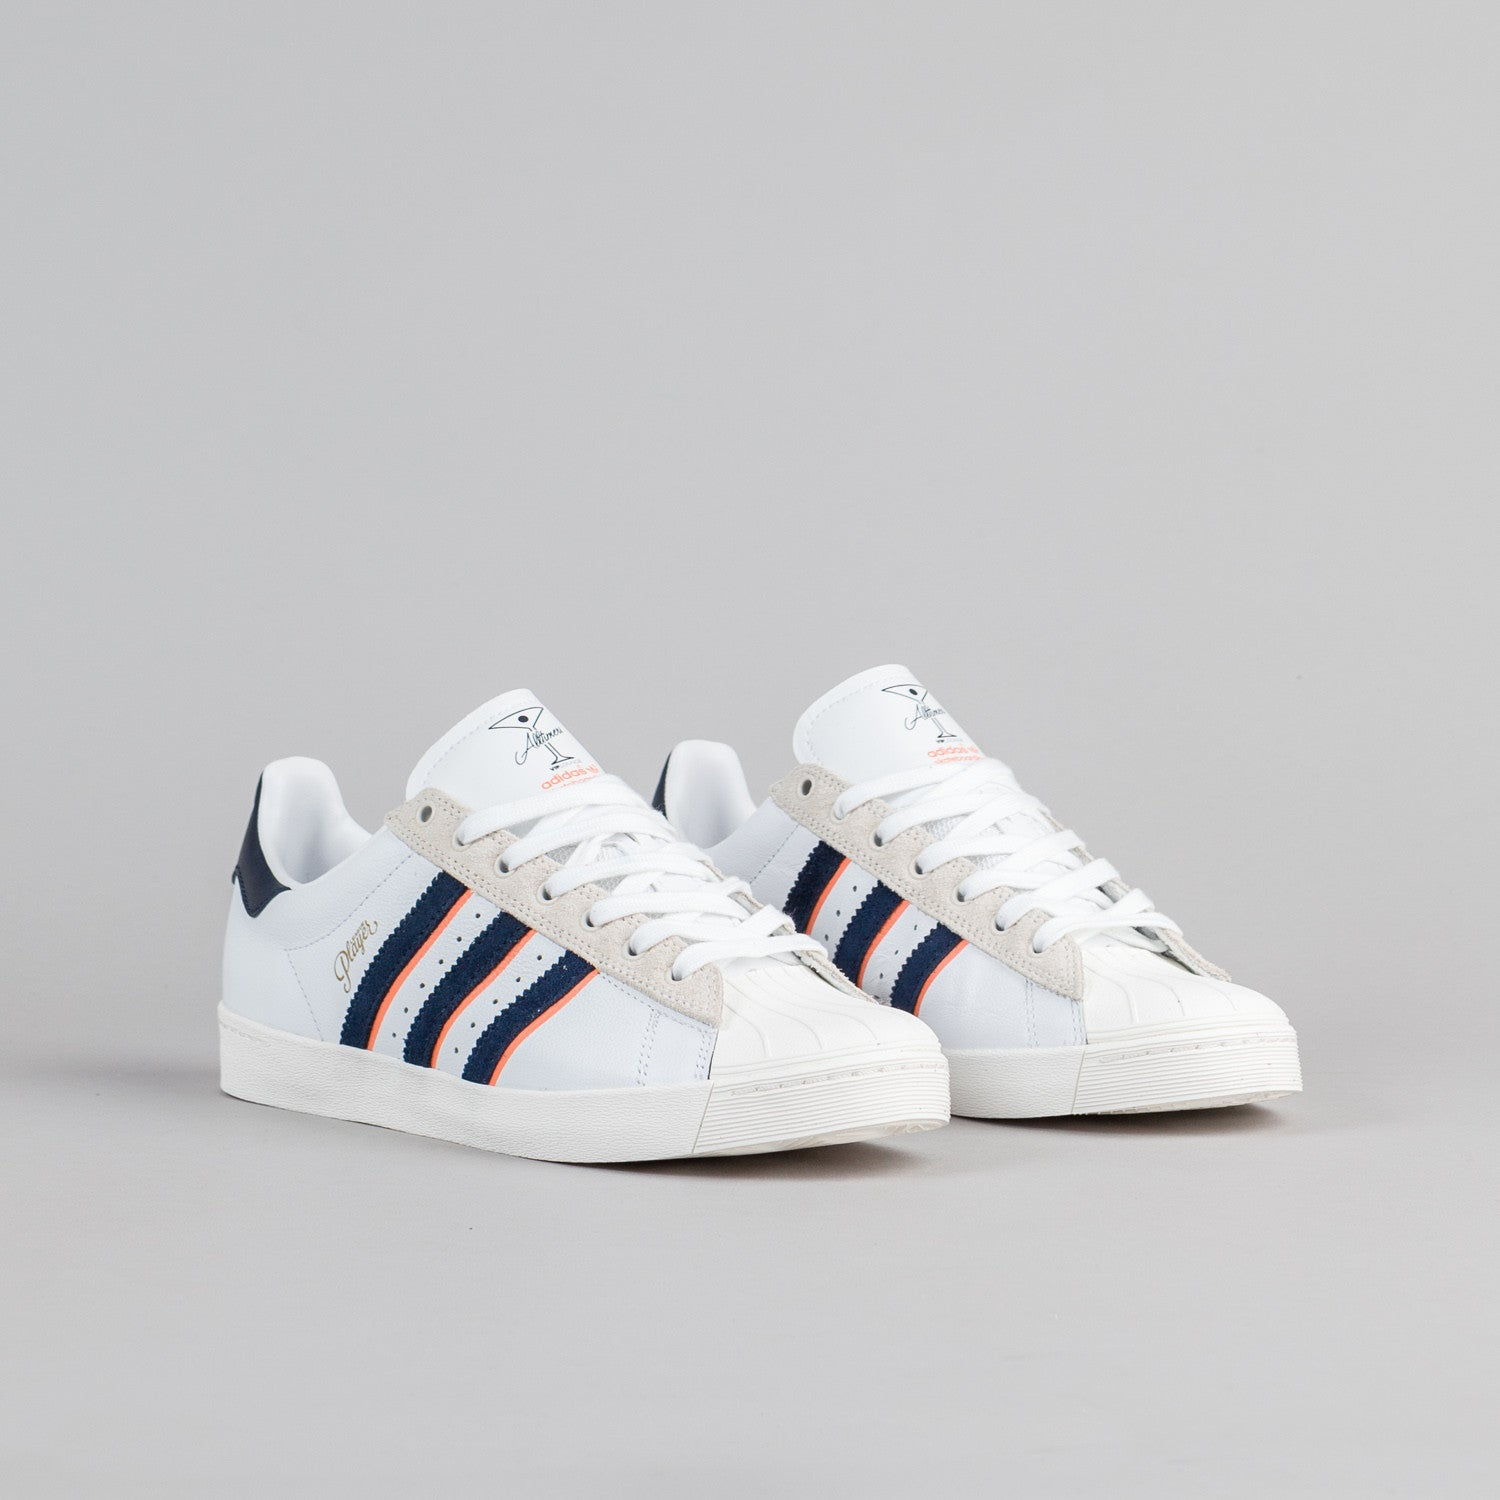 Cheap Adidas Superstar 80s AdiColor Pack